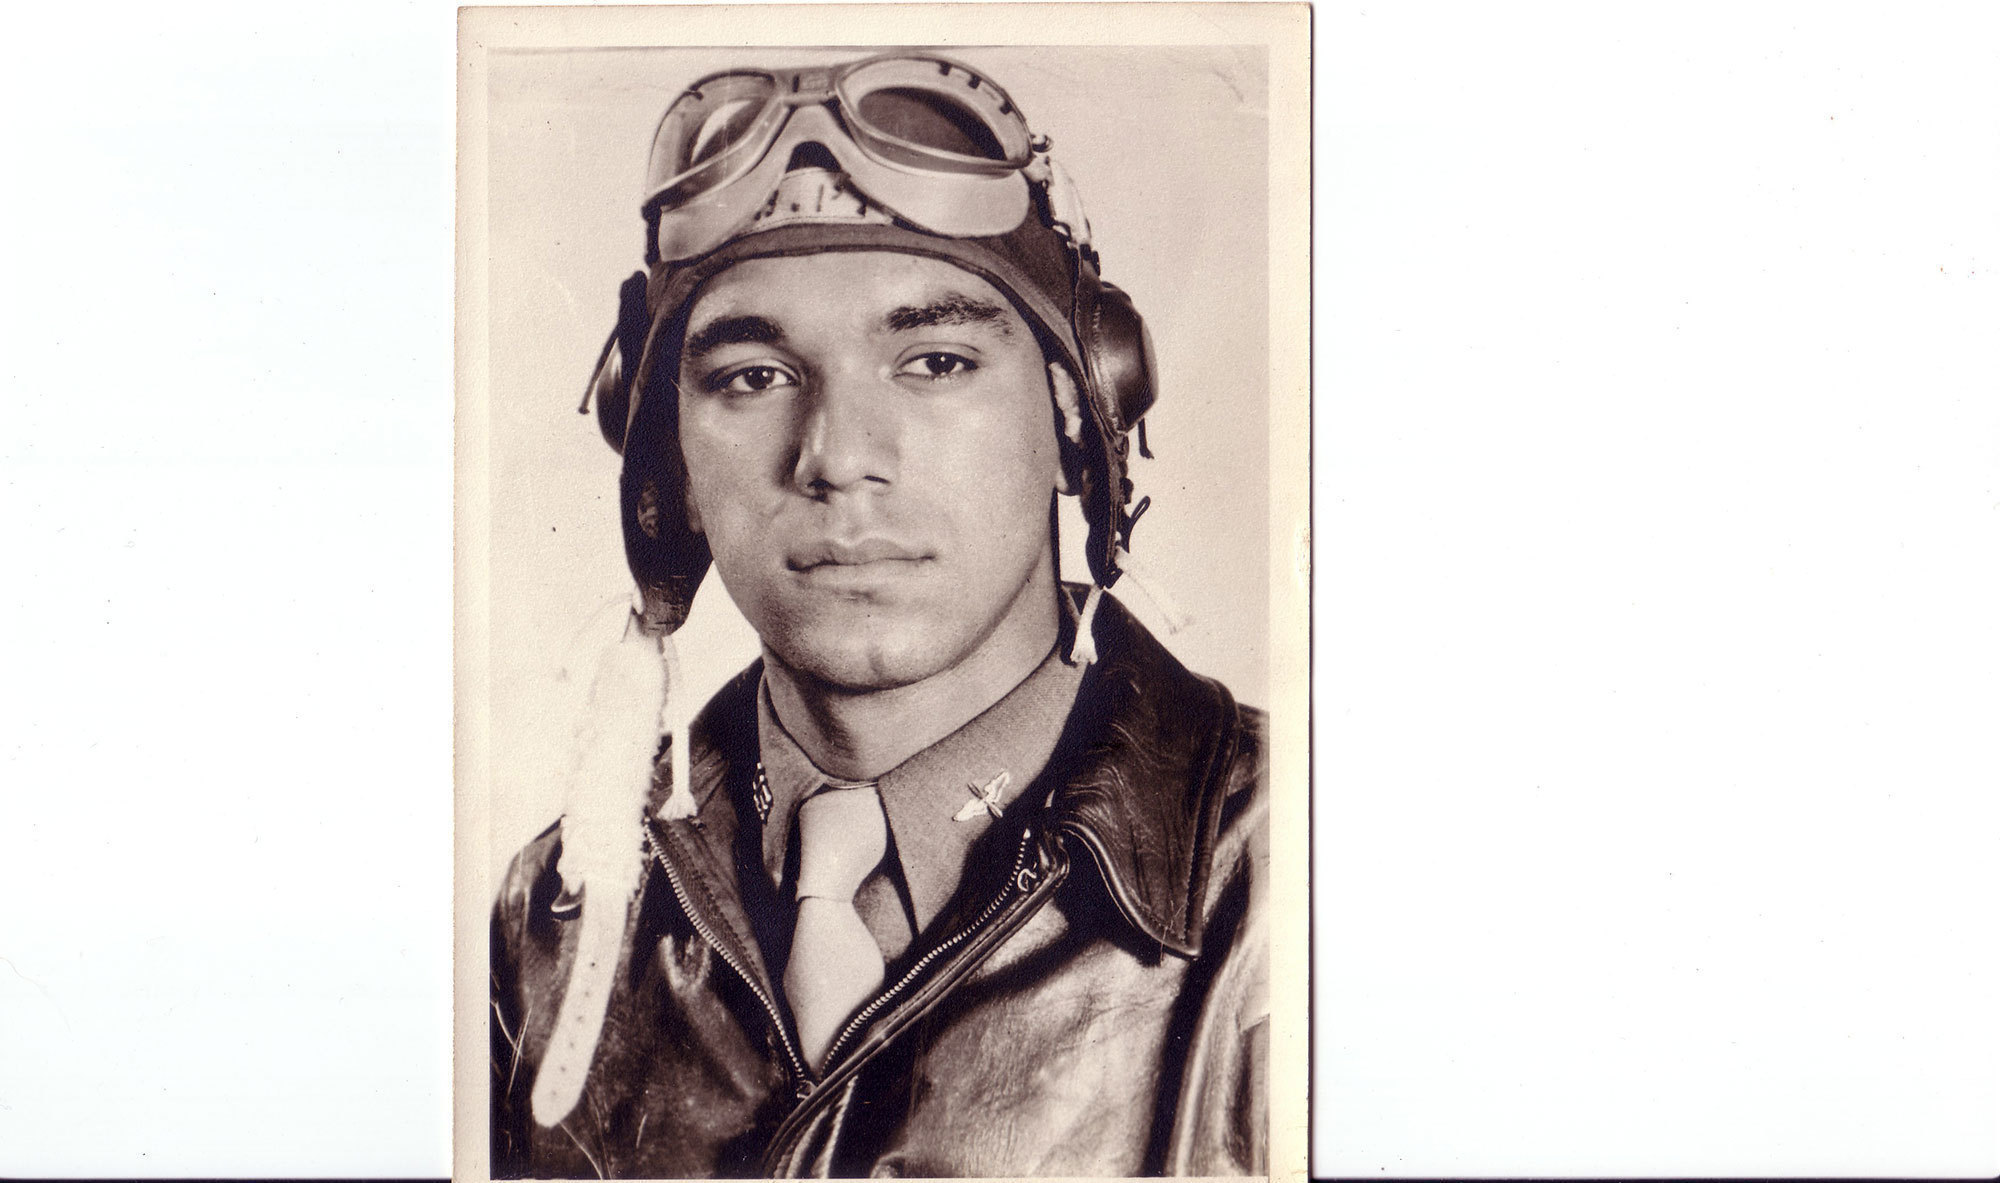 essay on tuskegee airmen History and political science: the tuskegee airmen the 332nd fighter group, also known as the tuskegee airmen made history as the first african-americans to pilot.